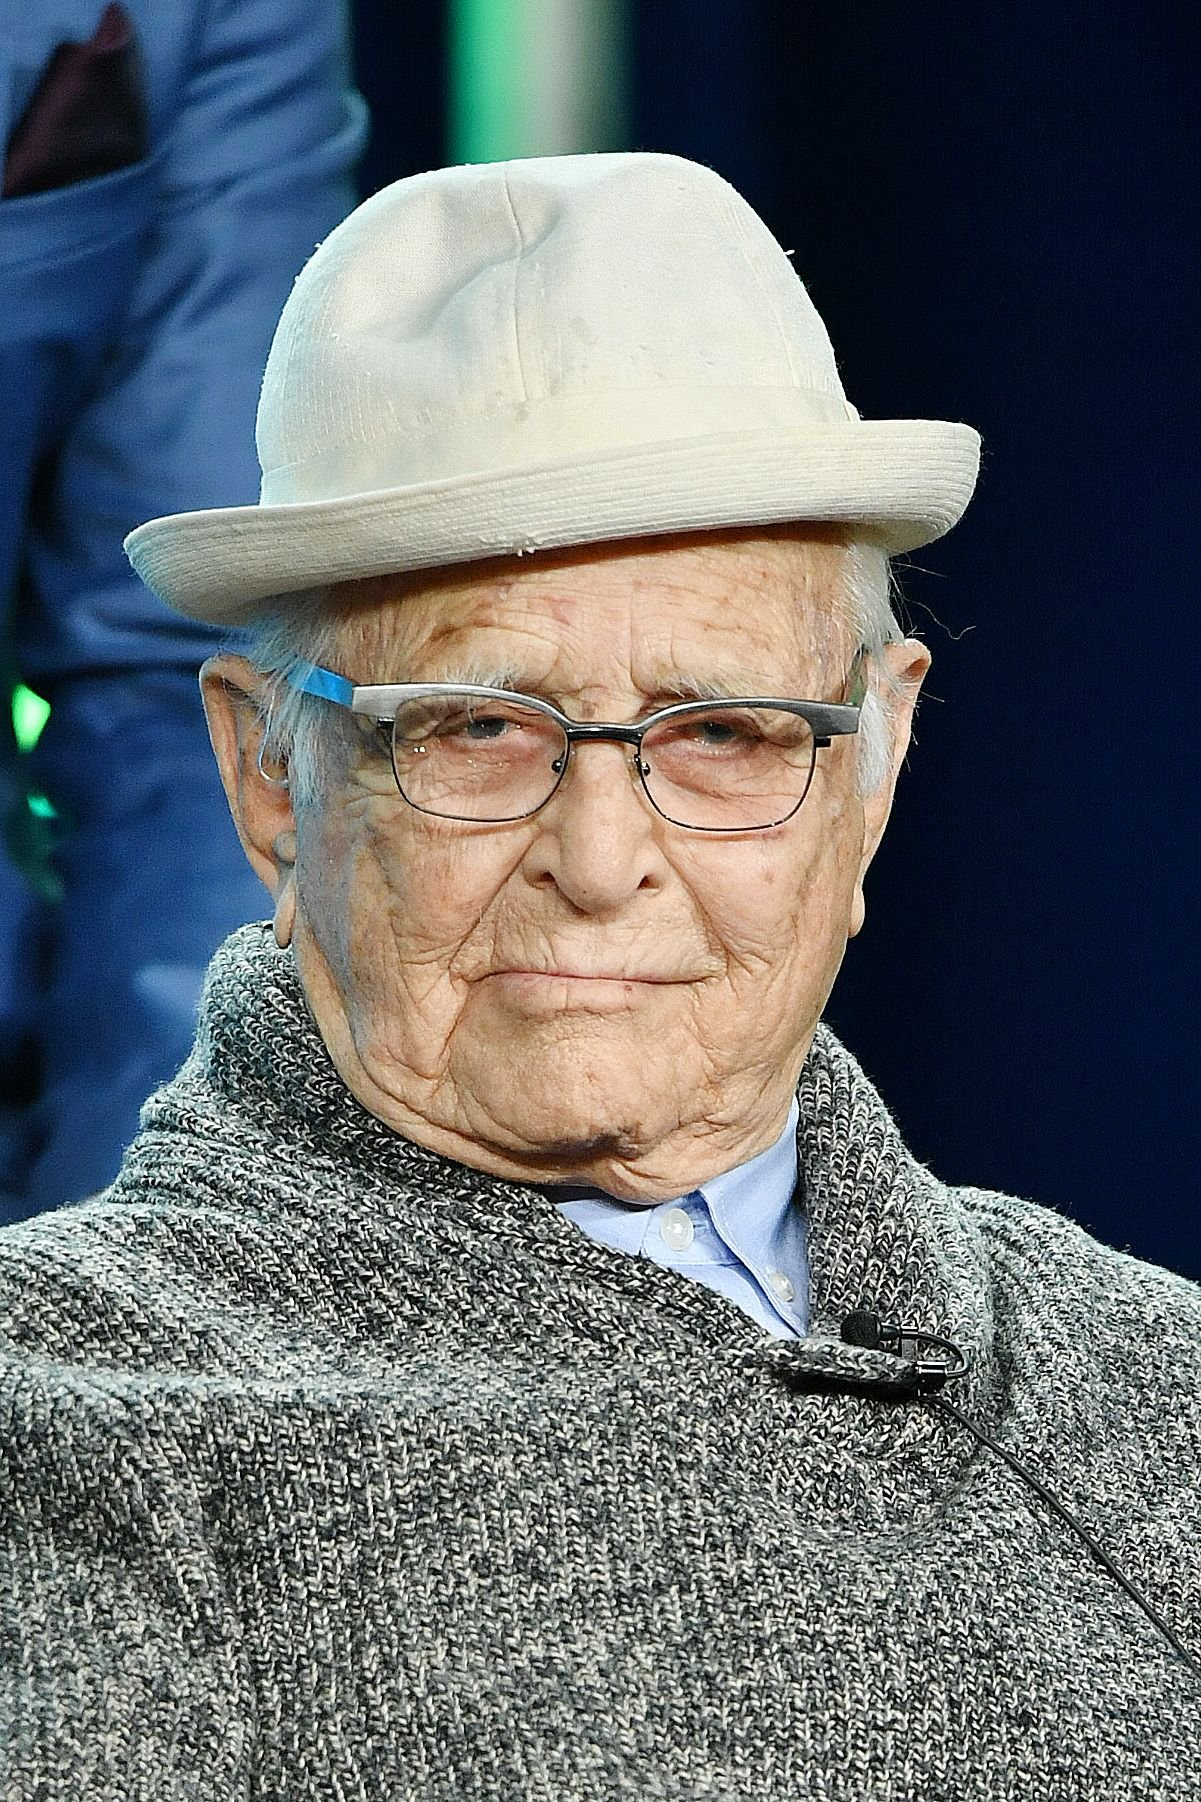 """Norman Lear of """"One Day at a Time"""" at the 2020 Winter TCA Press Tour in Pasadena 